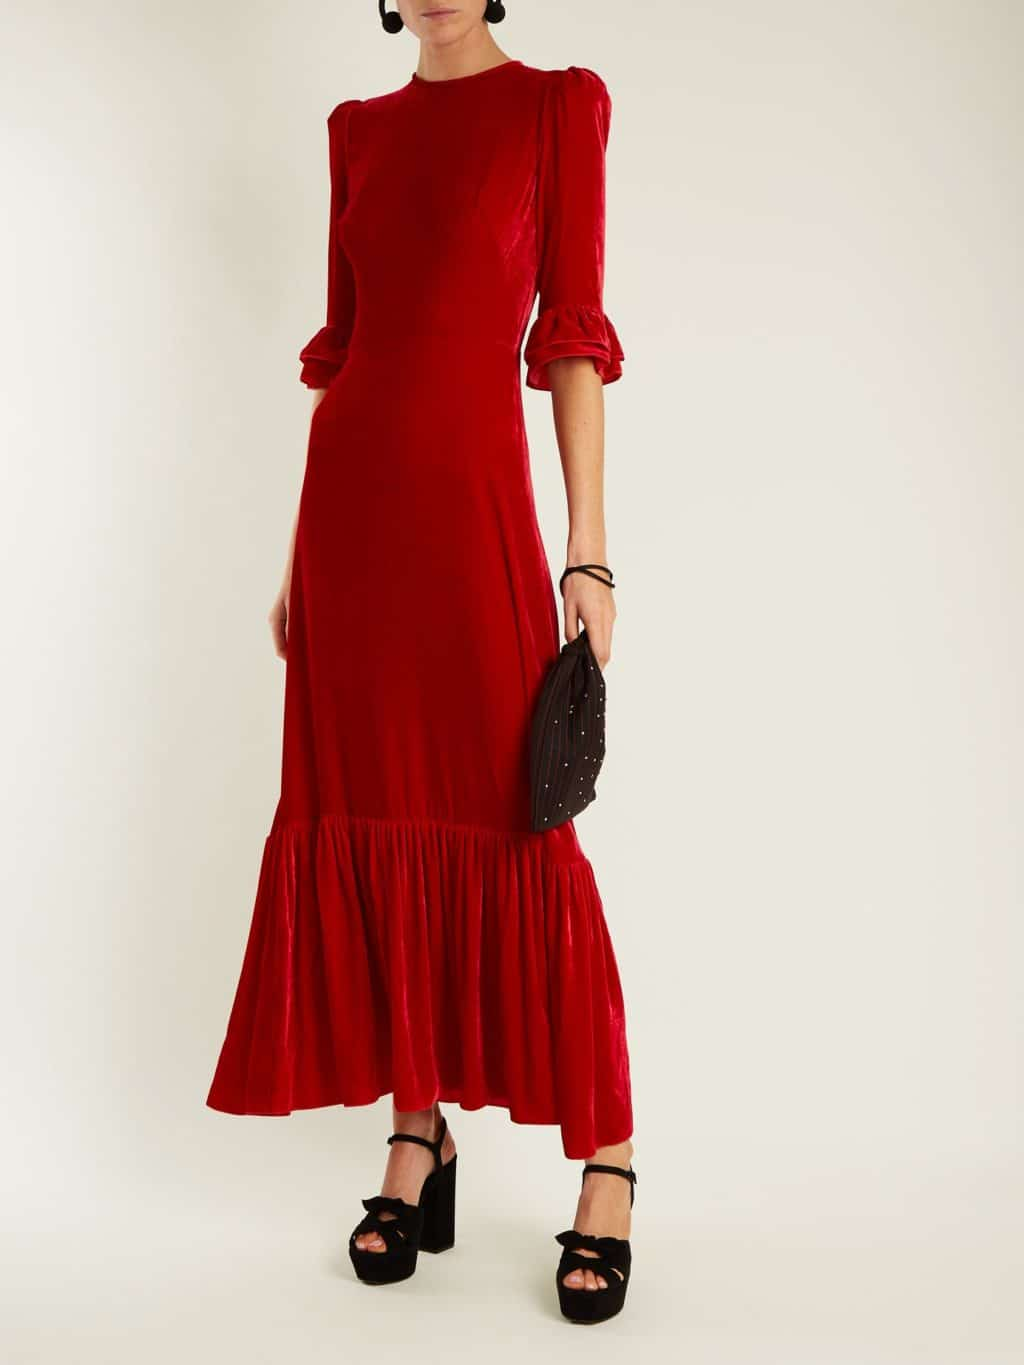 THE VAMPIRE'S WIFE Festival Ruffled Velvet Red Dress